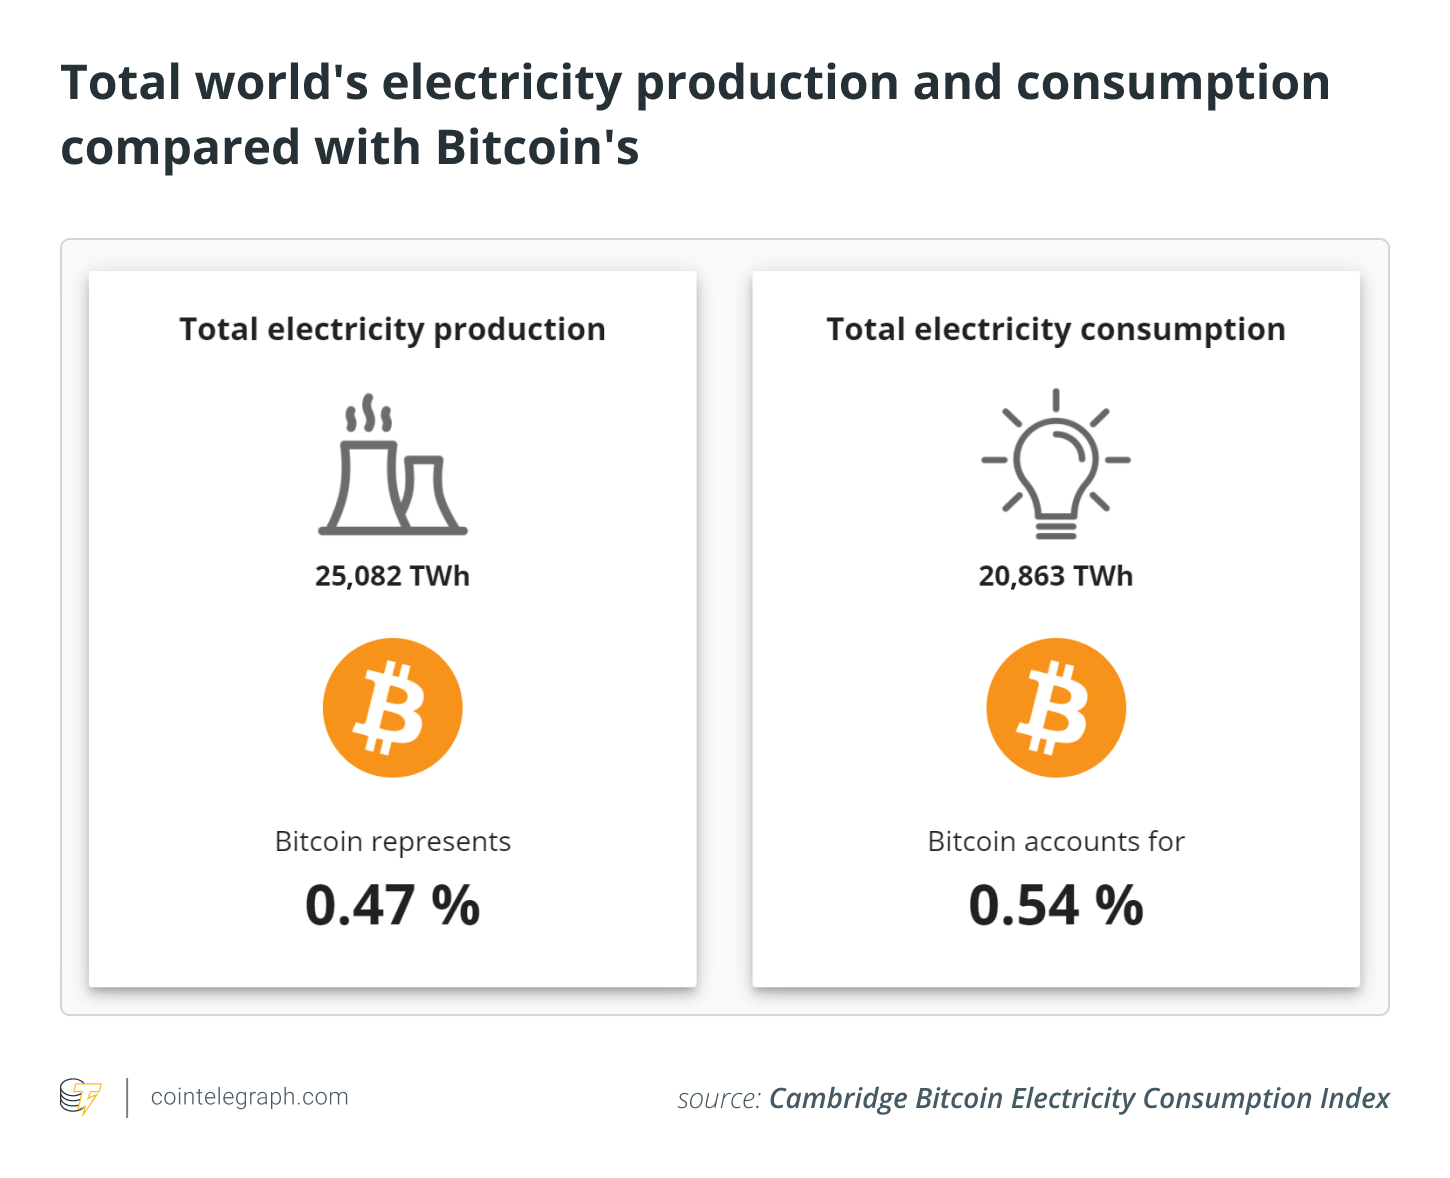 The impact and importance of energy use for PoW